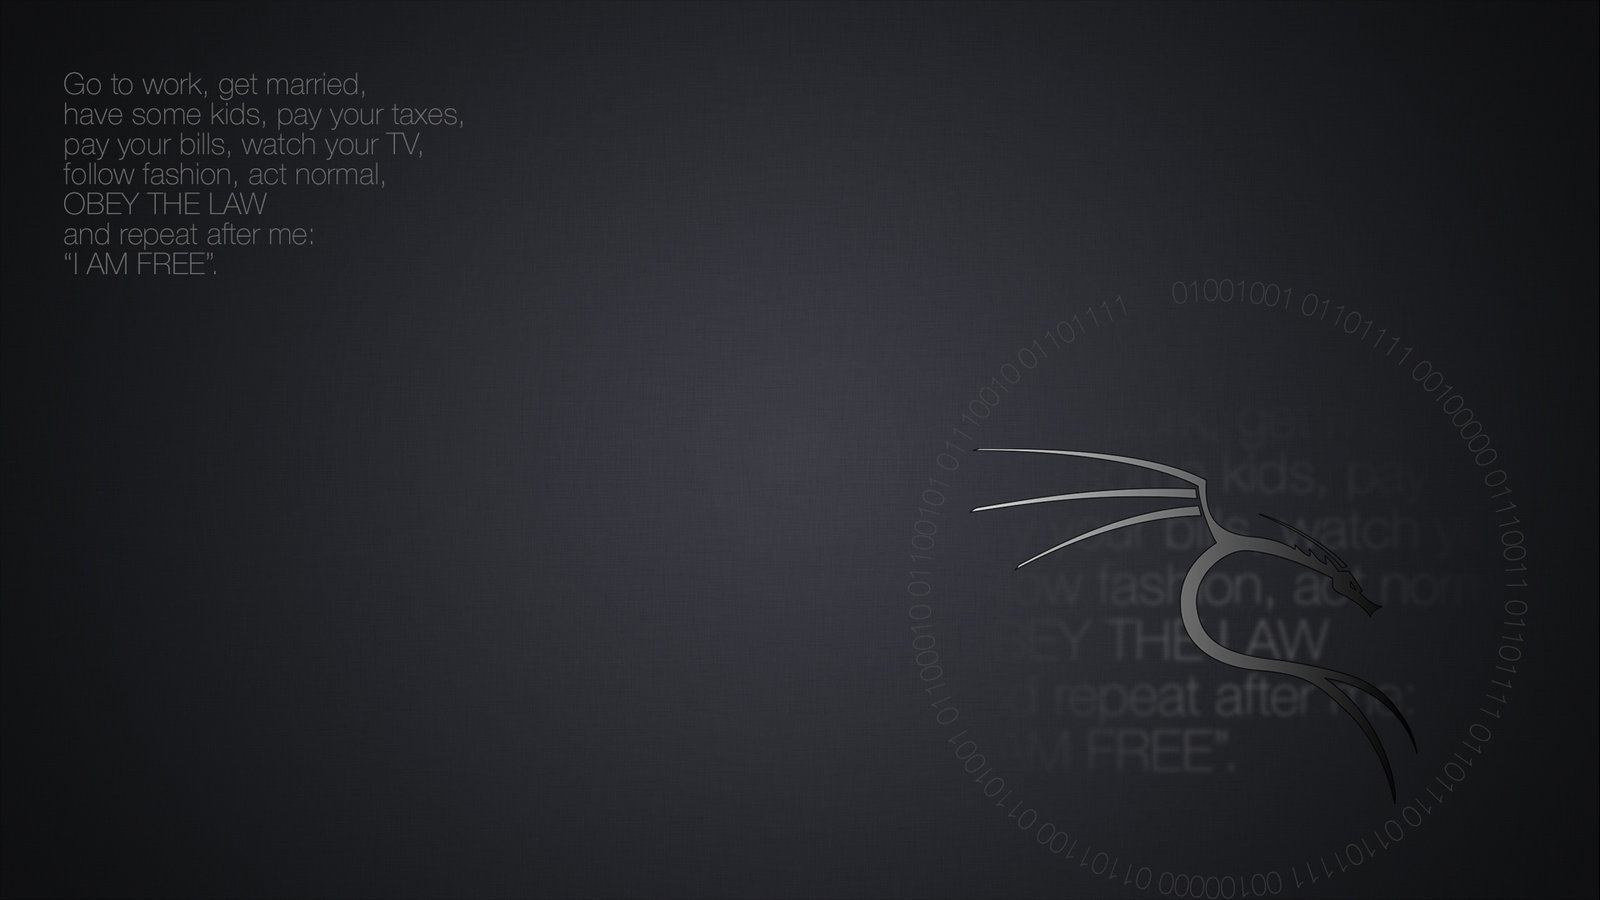 kali linux wallpaper hd - photo #19